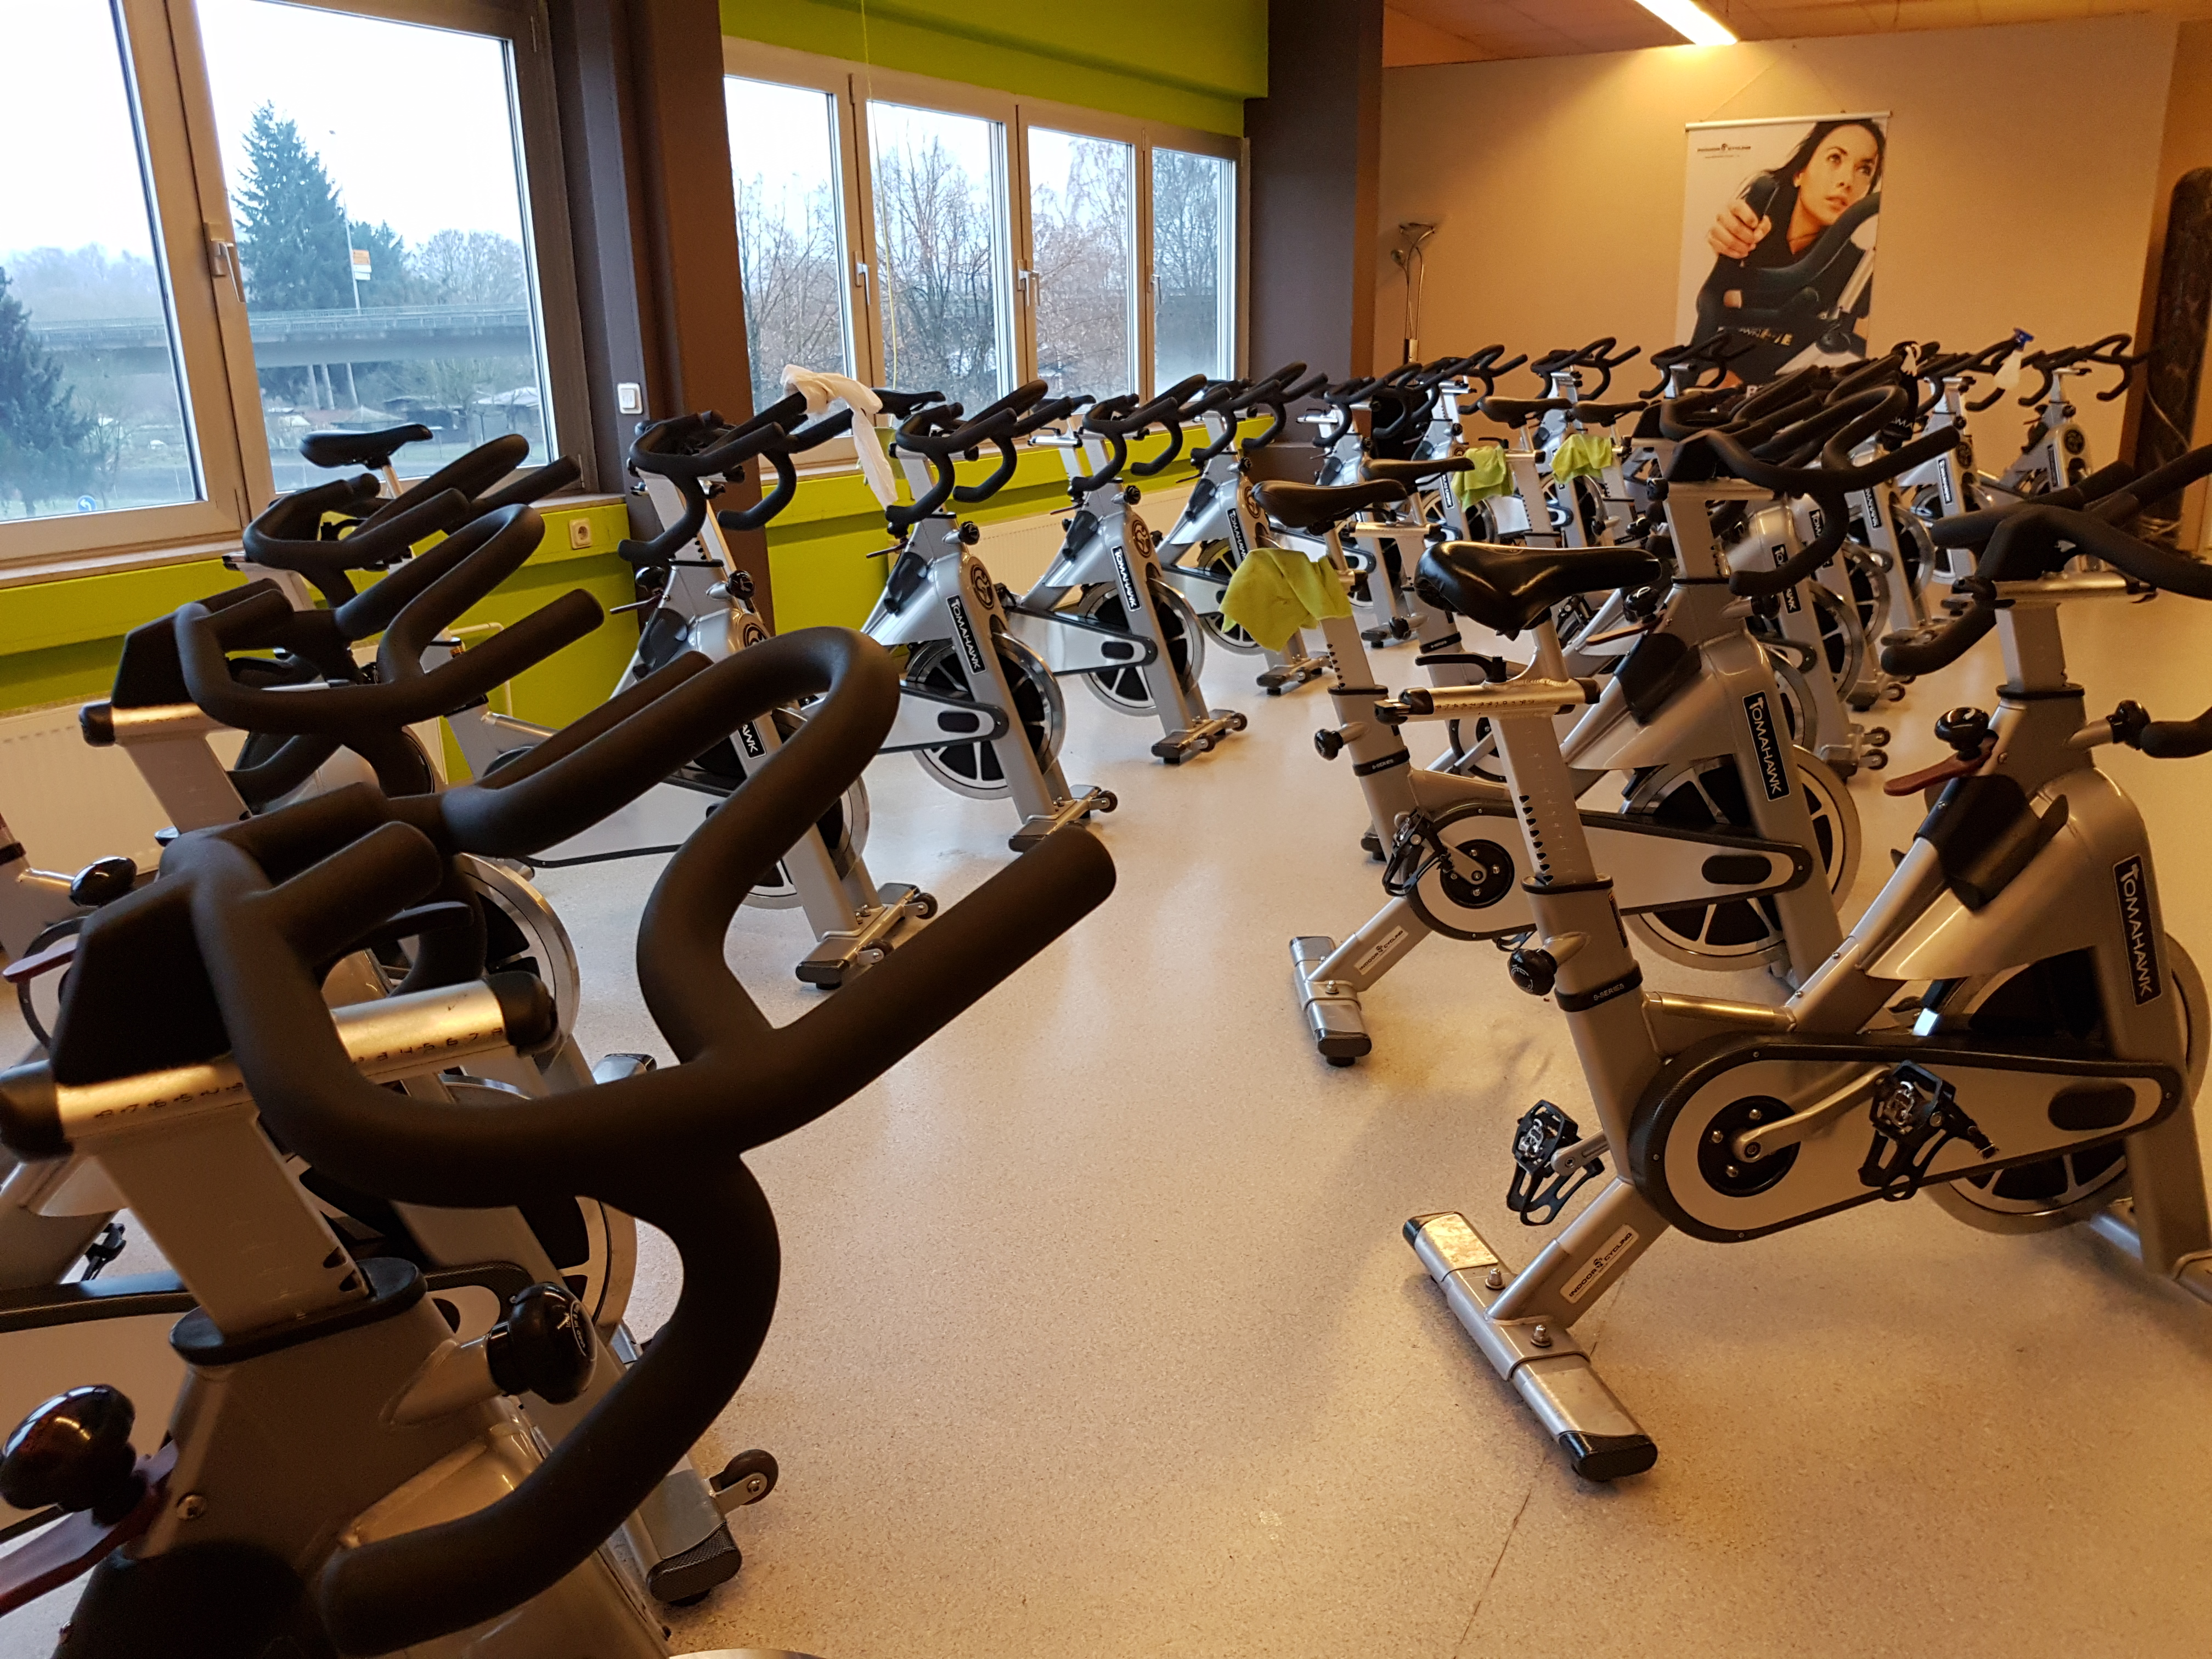 Indoor-Cycling Area